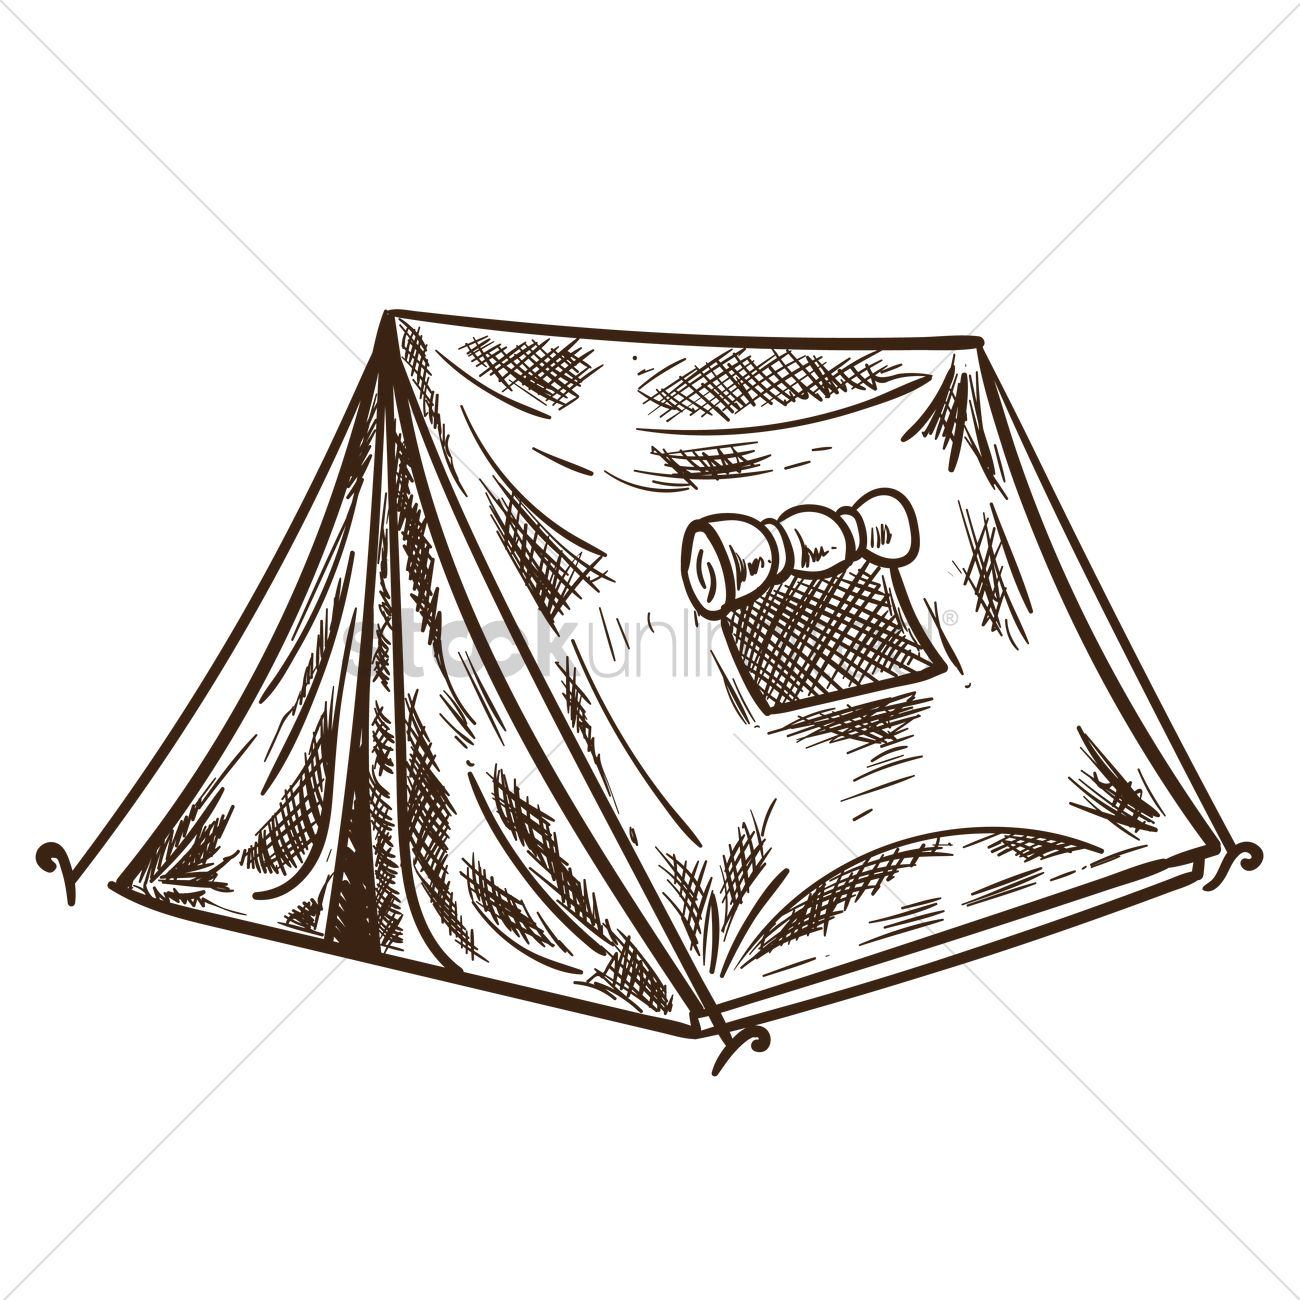 1300x1300 Camping Tent Vector Image